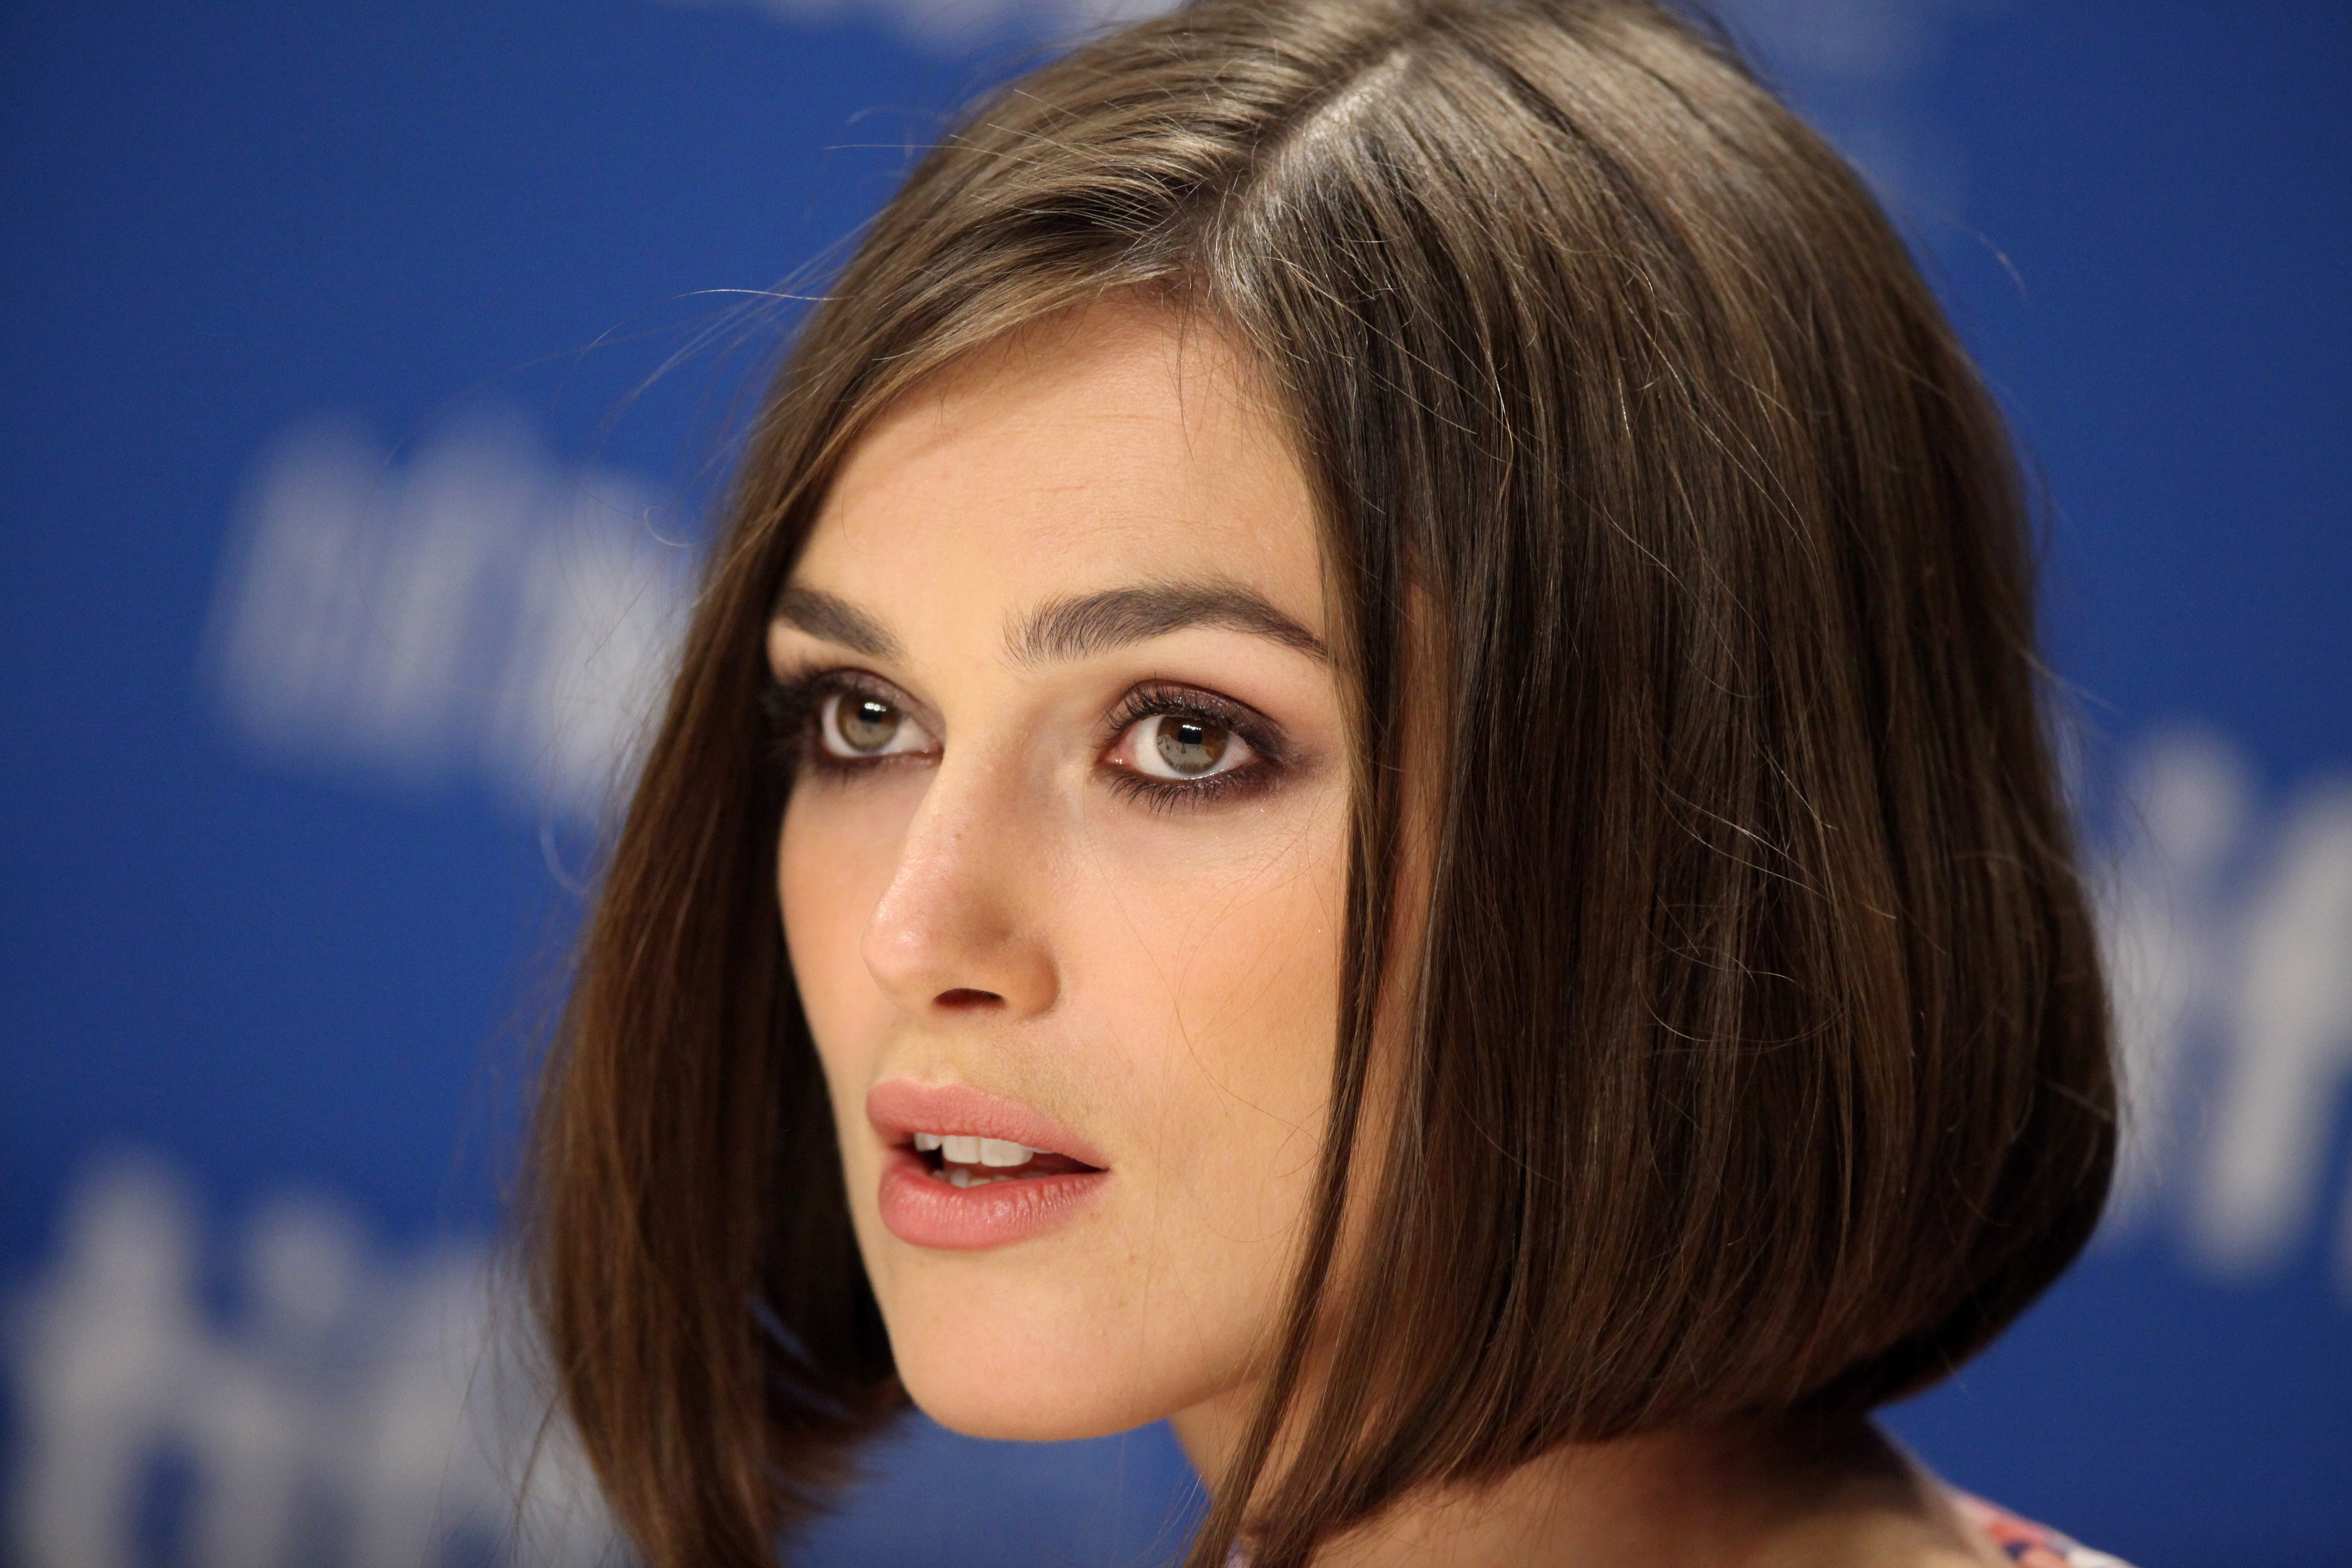 Keira Knightley photo ... Keira Knightley